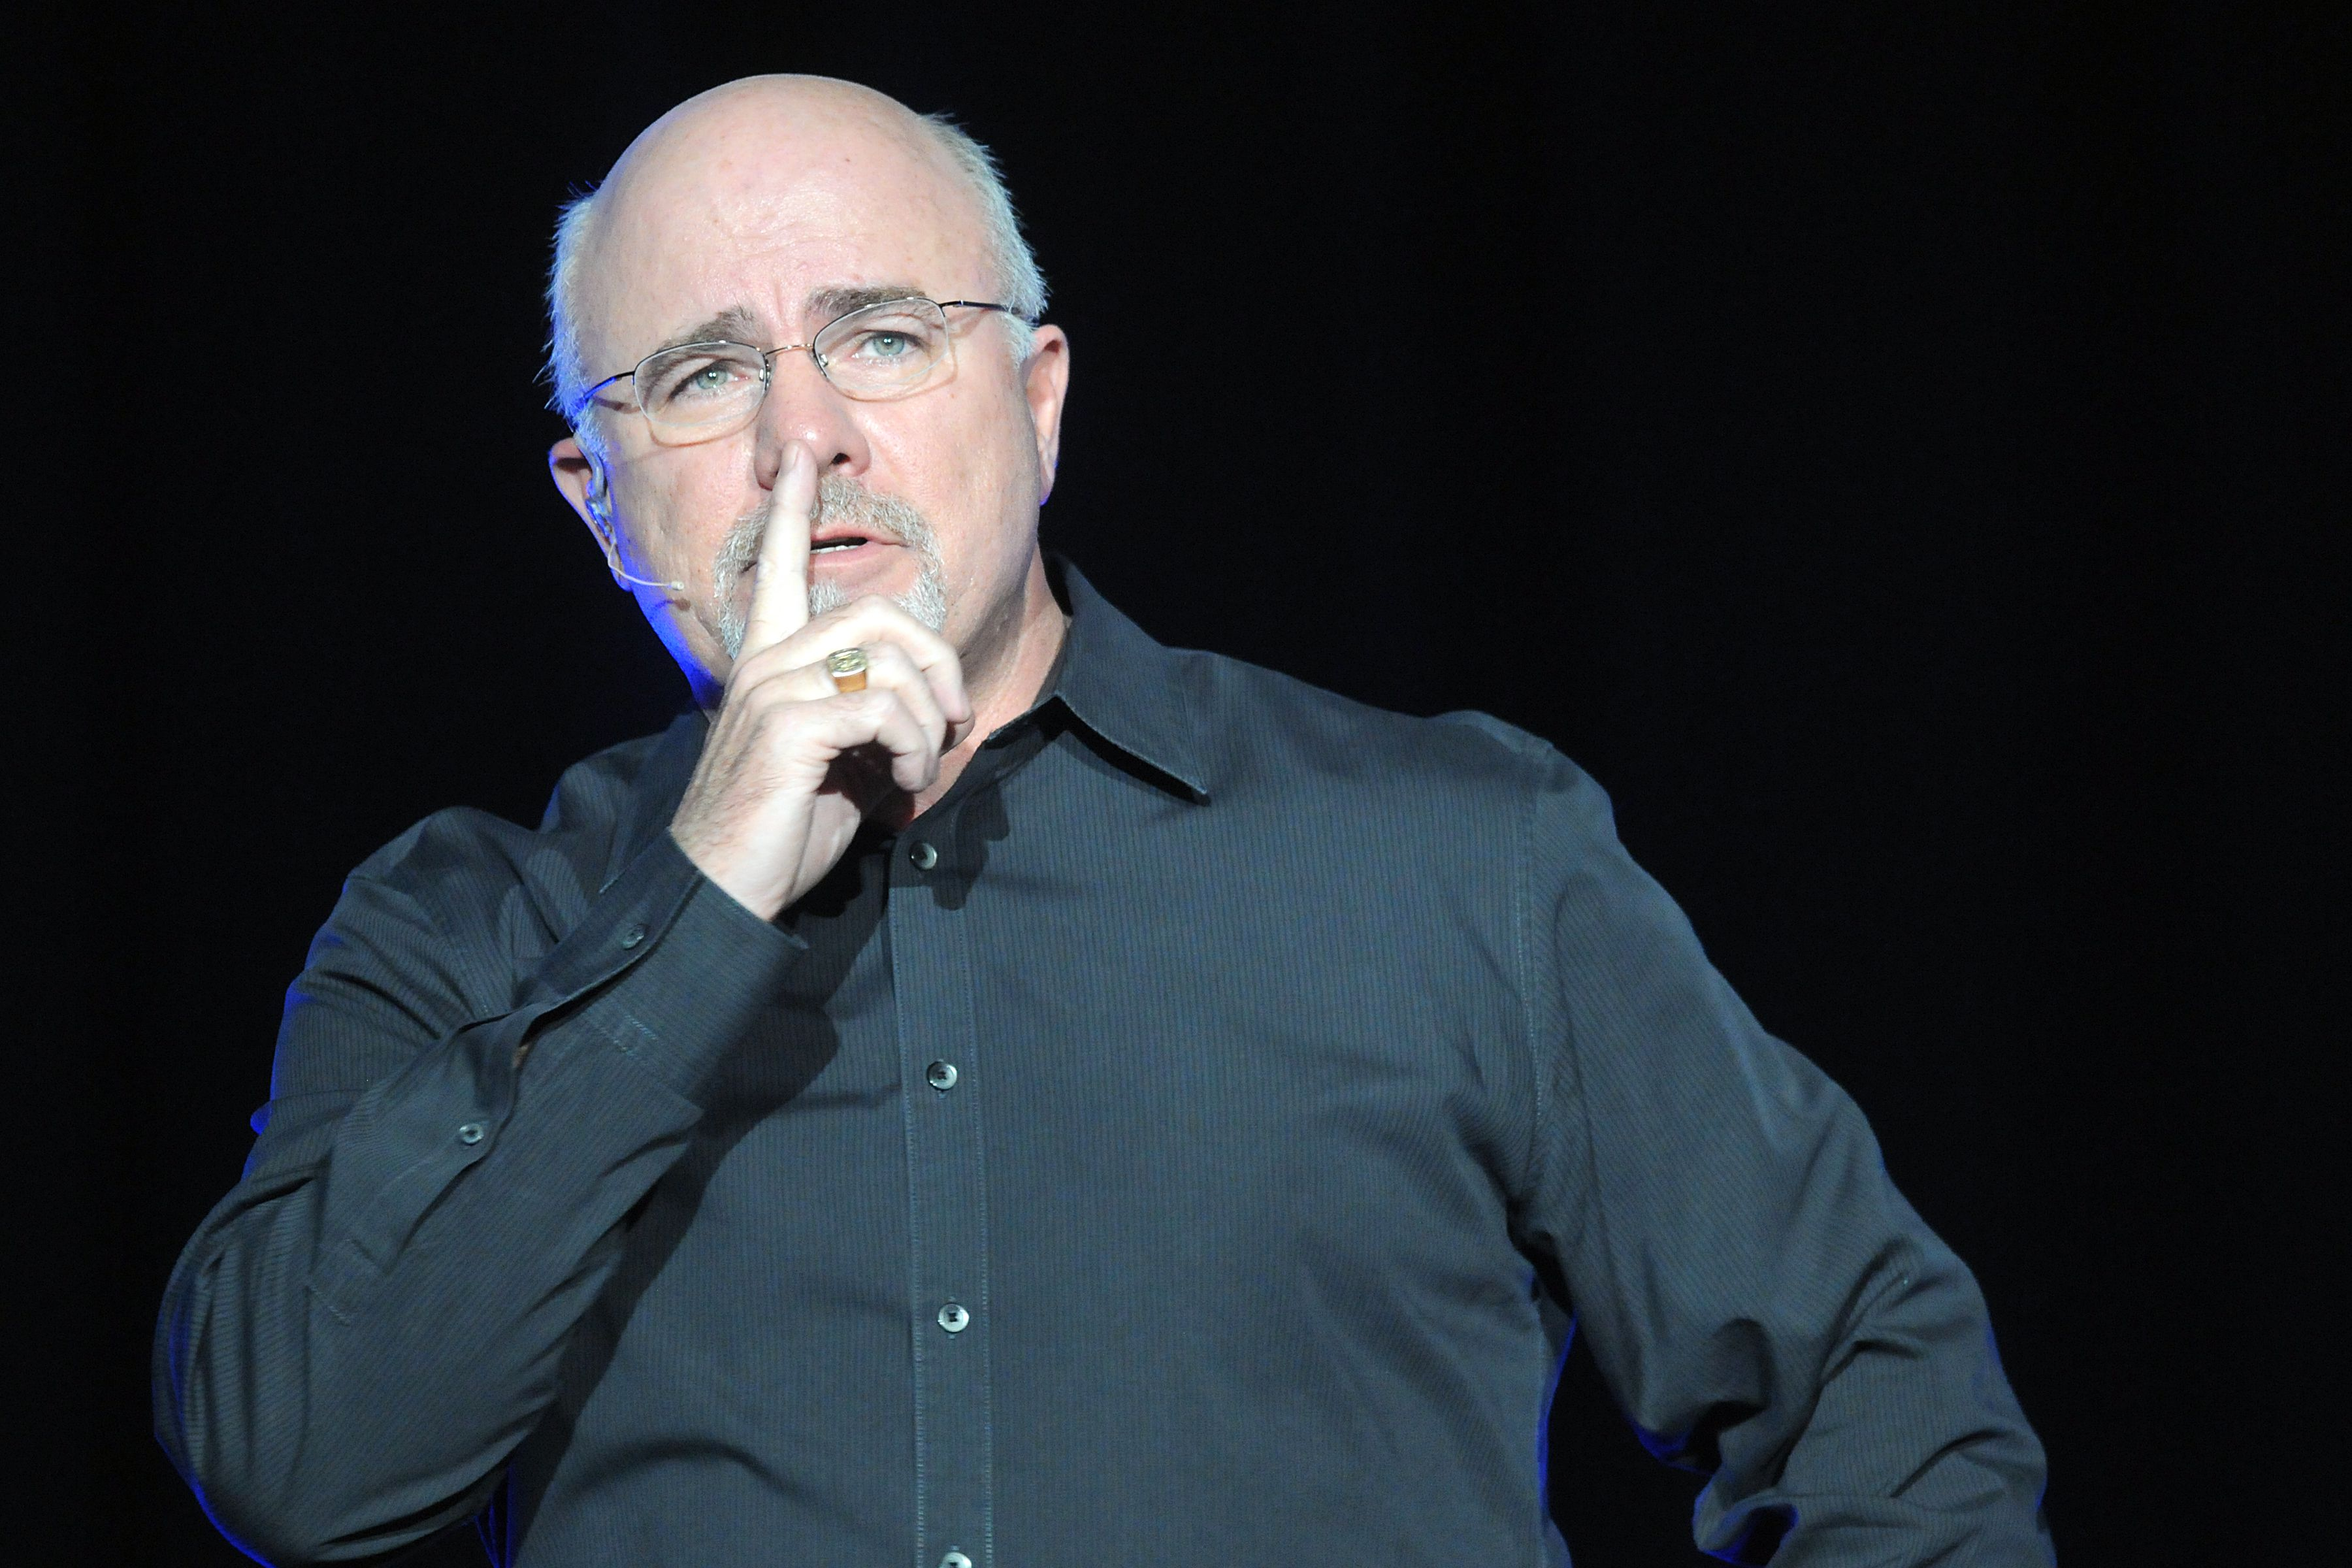 I Like Dave Ramsey, but He's Dead Wrong on Mutual Funds